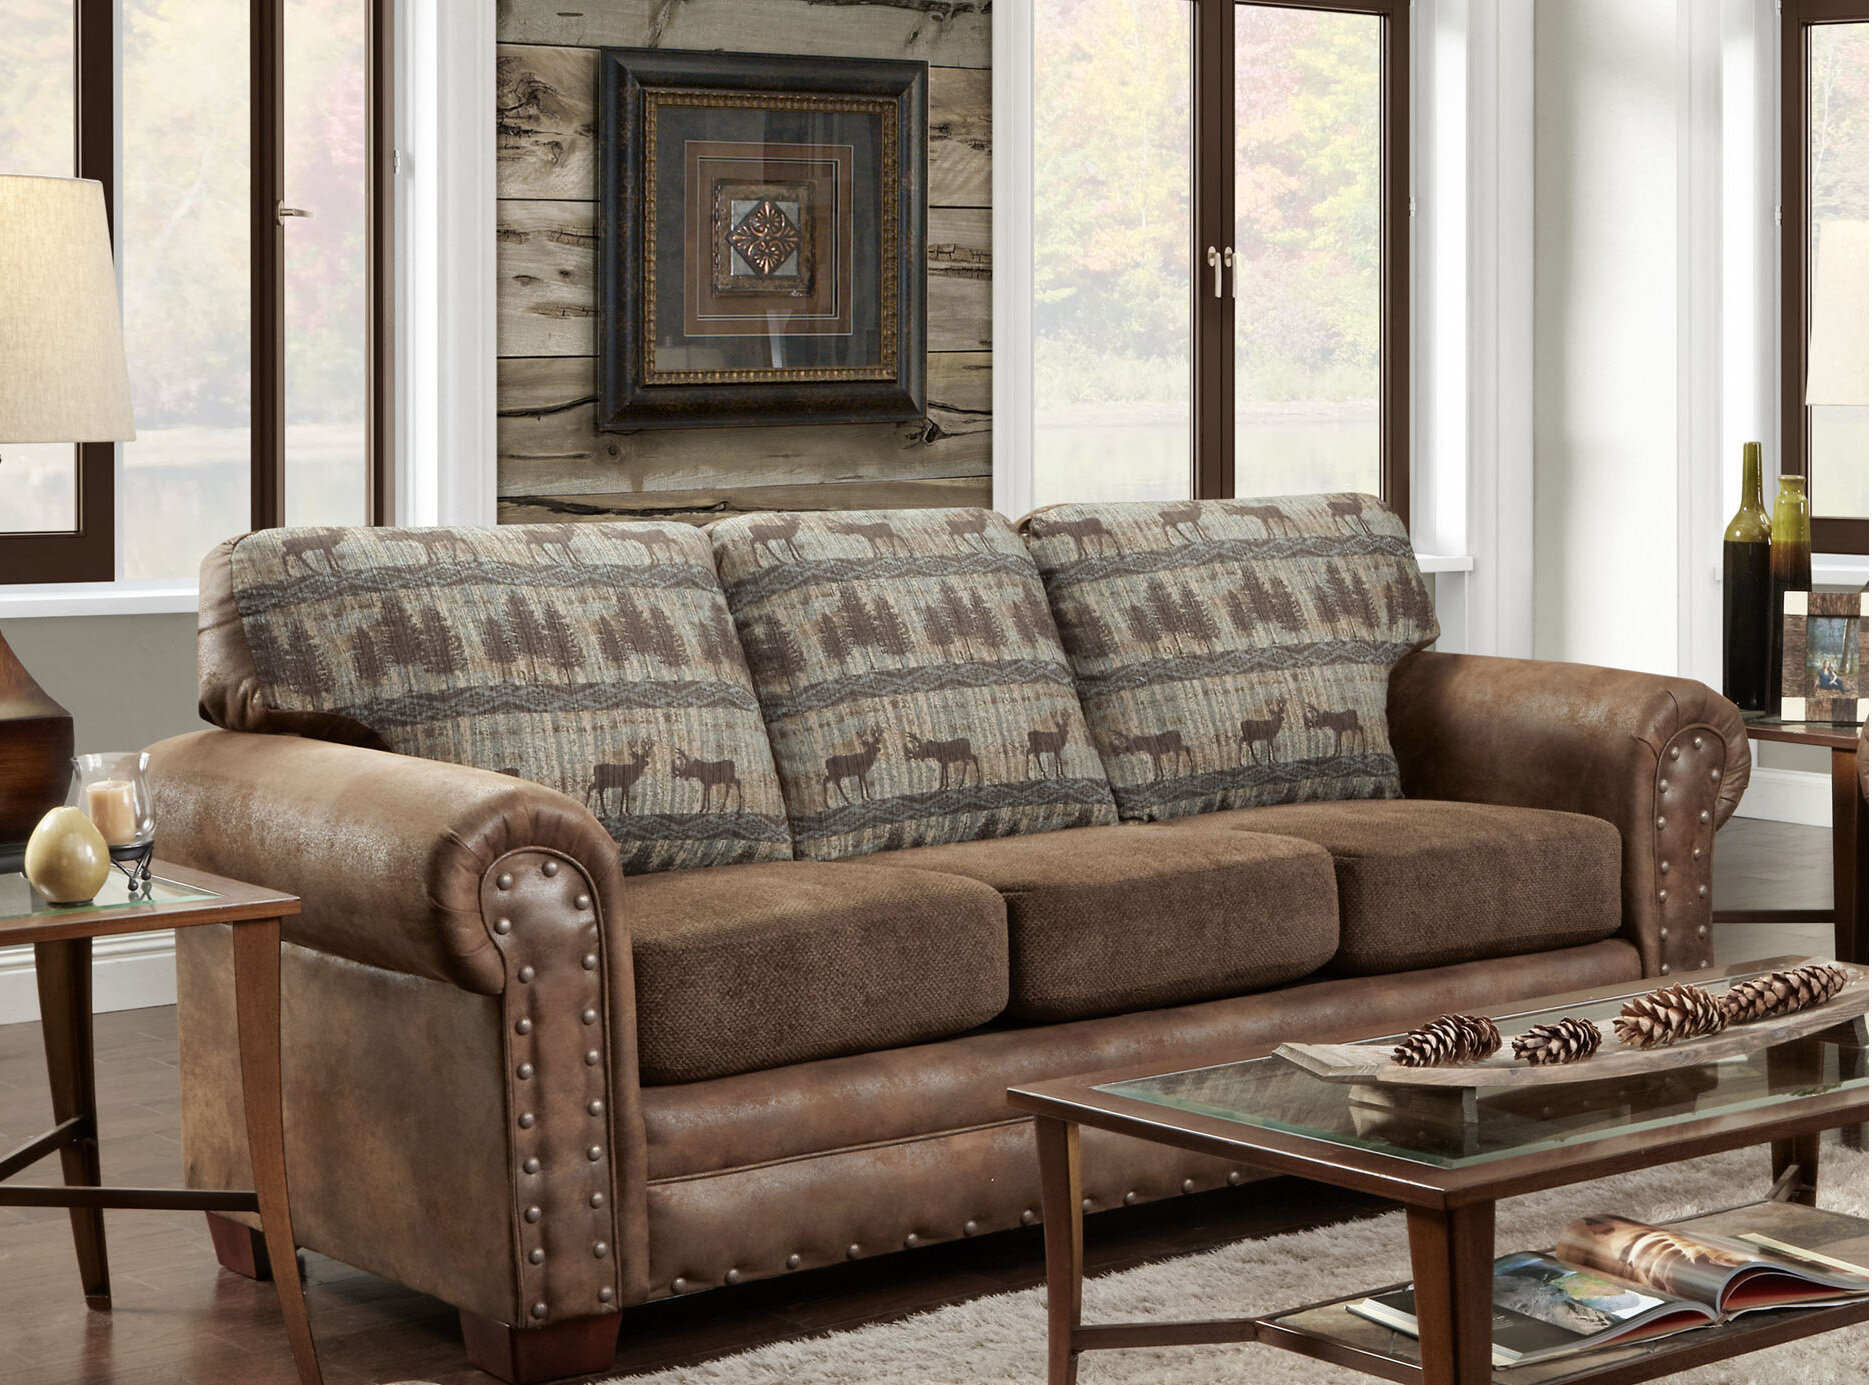 Awesome American Furniture Classics Deer Lodge Sofa | Wayfair